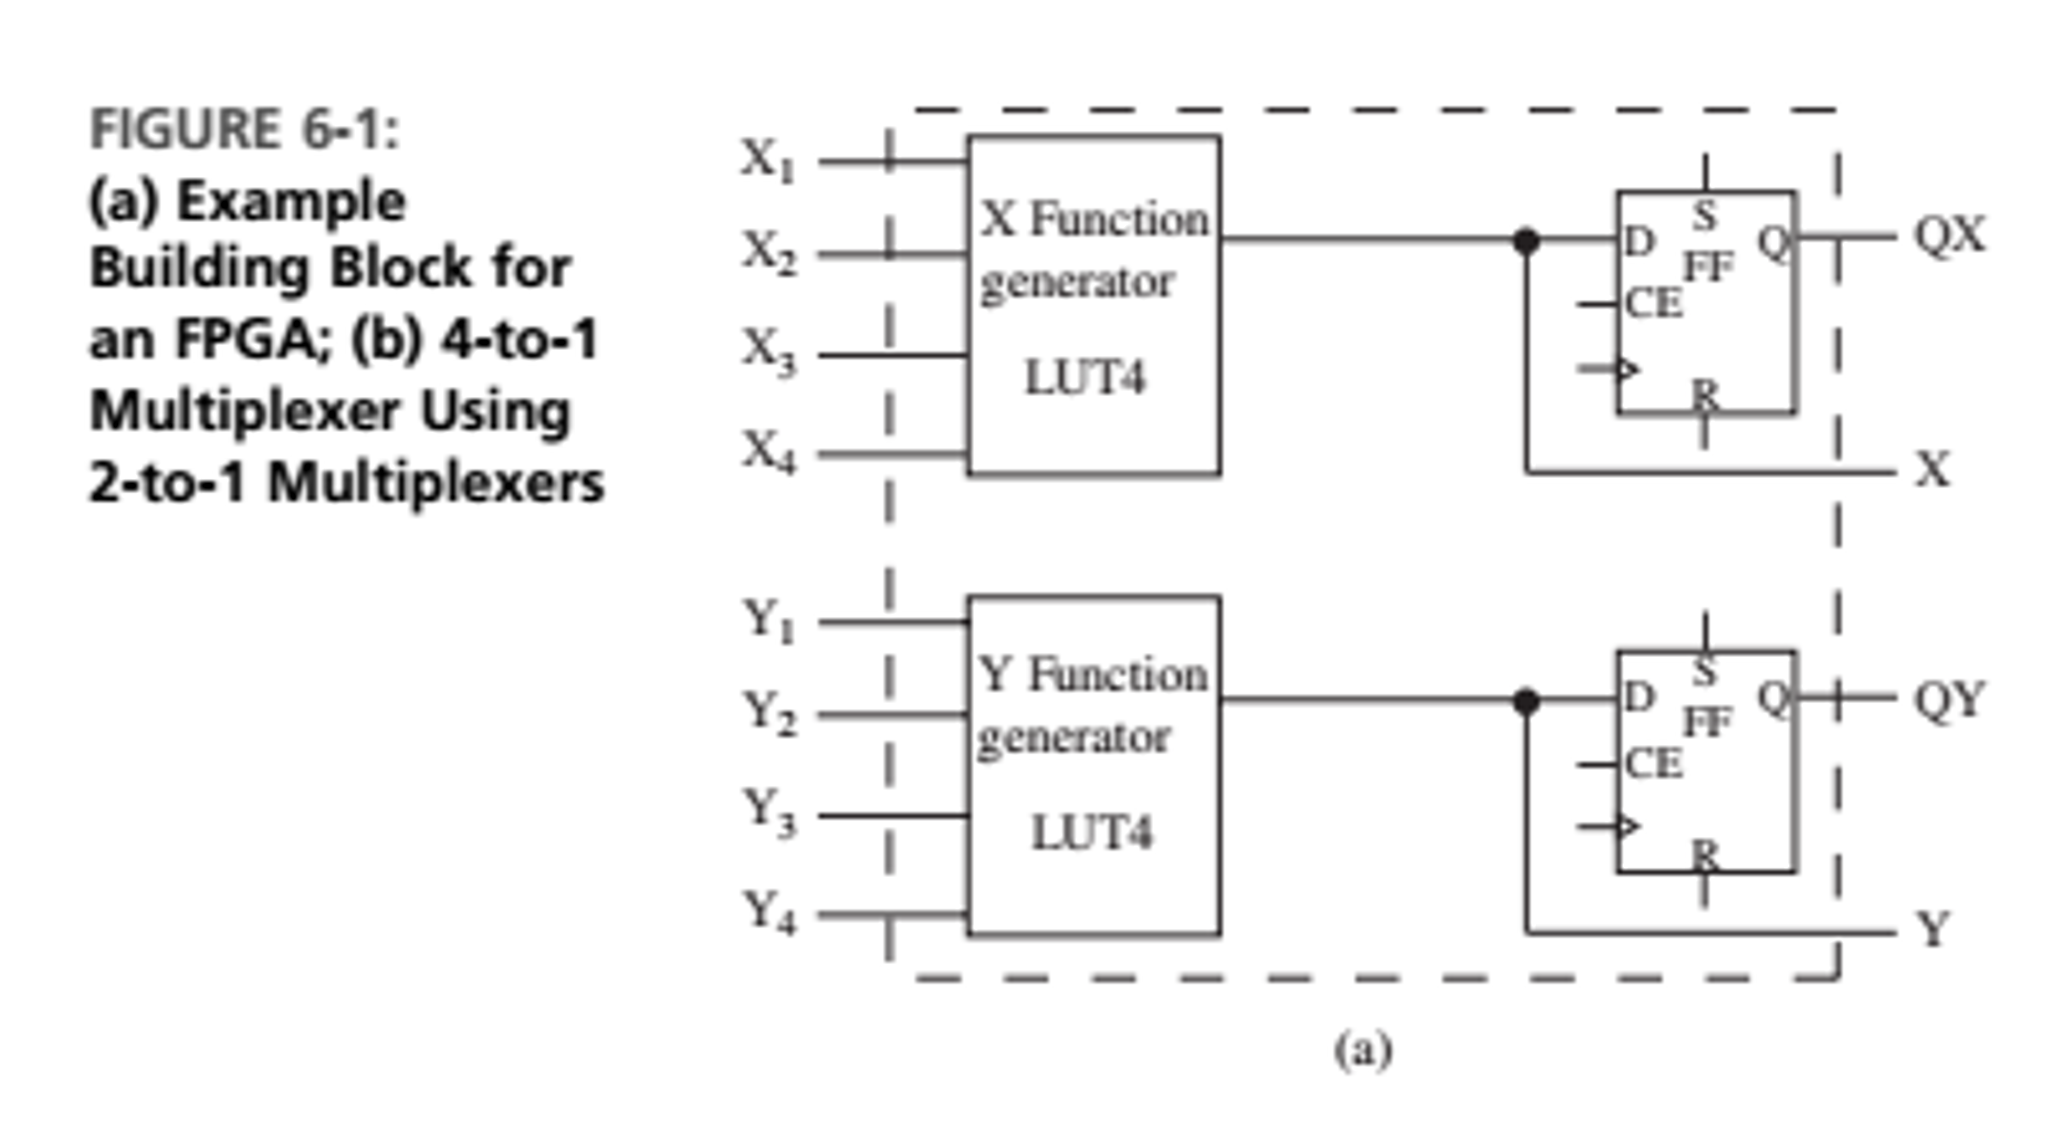 An 8-bit Right Shift Register With Parallel Load I ... on shift register circuit diagram, shift register truth table, shift register block diagram,